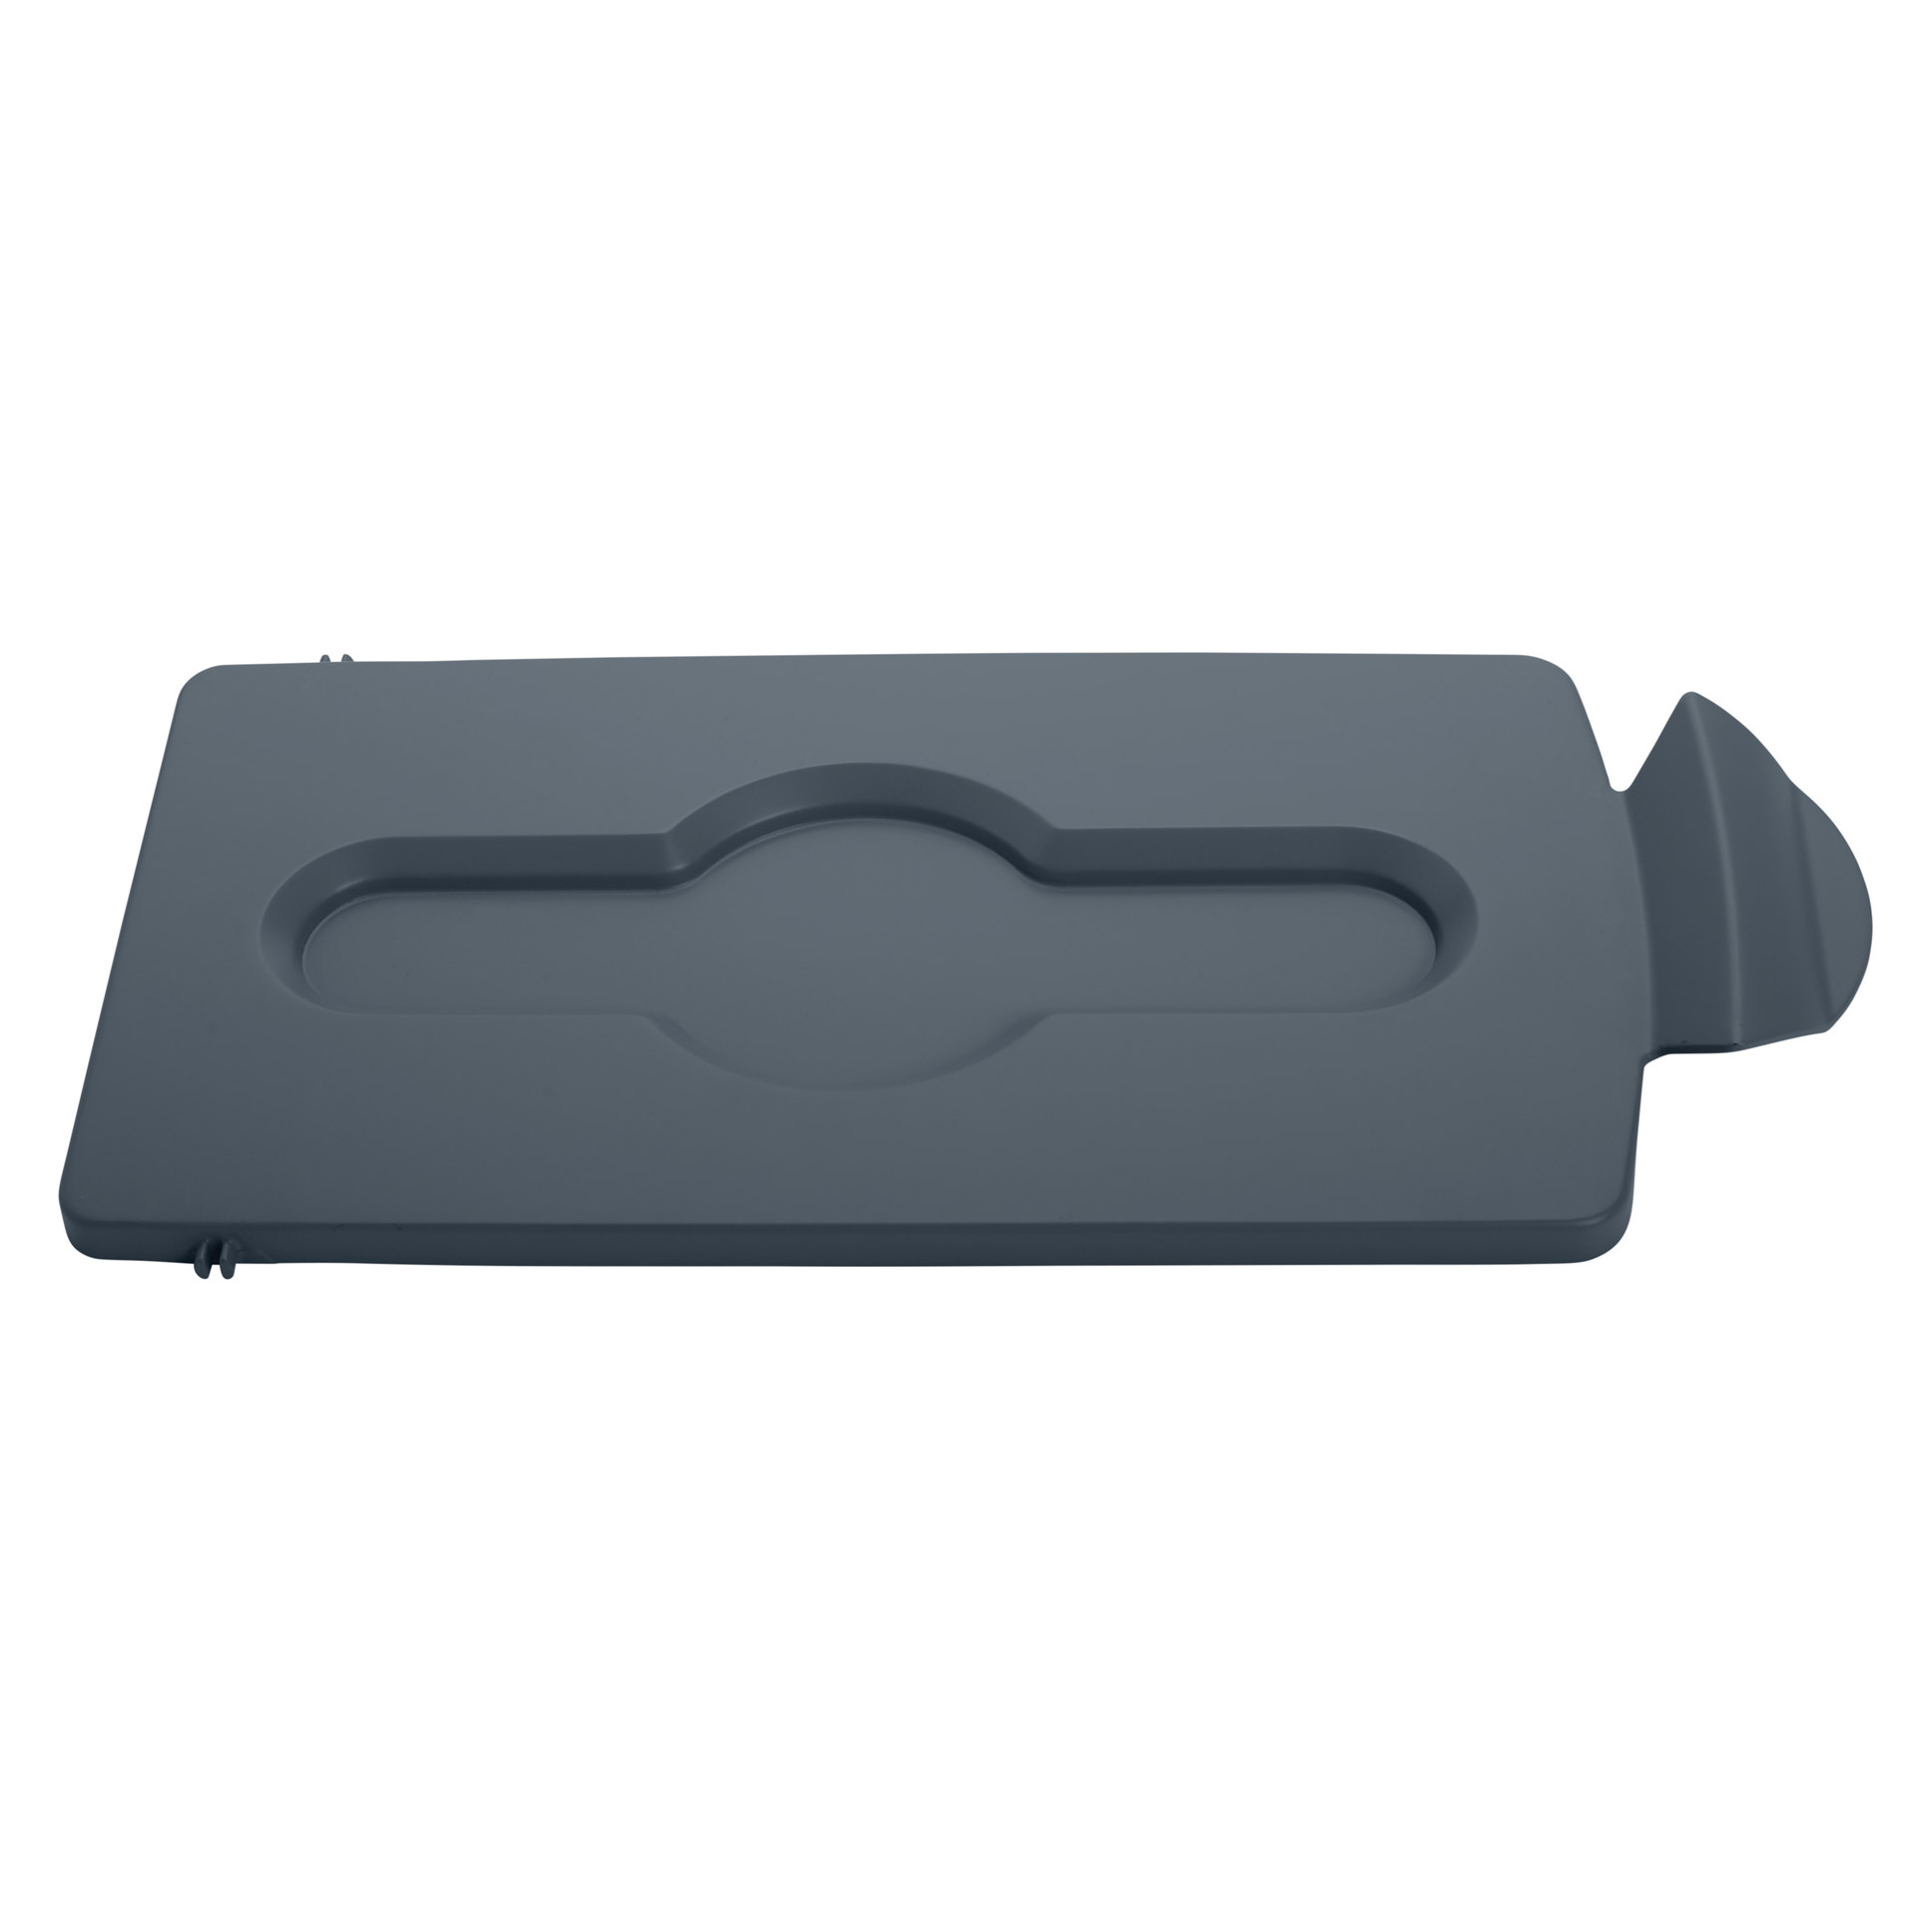 Rubbermaid Commercial Products 2007896 trash receptacle lid / top